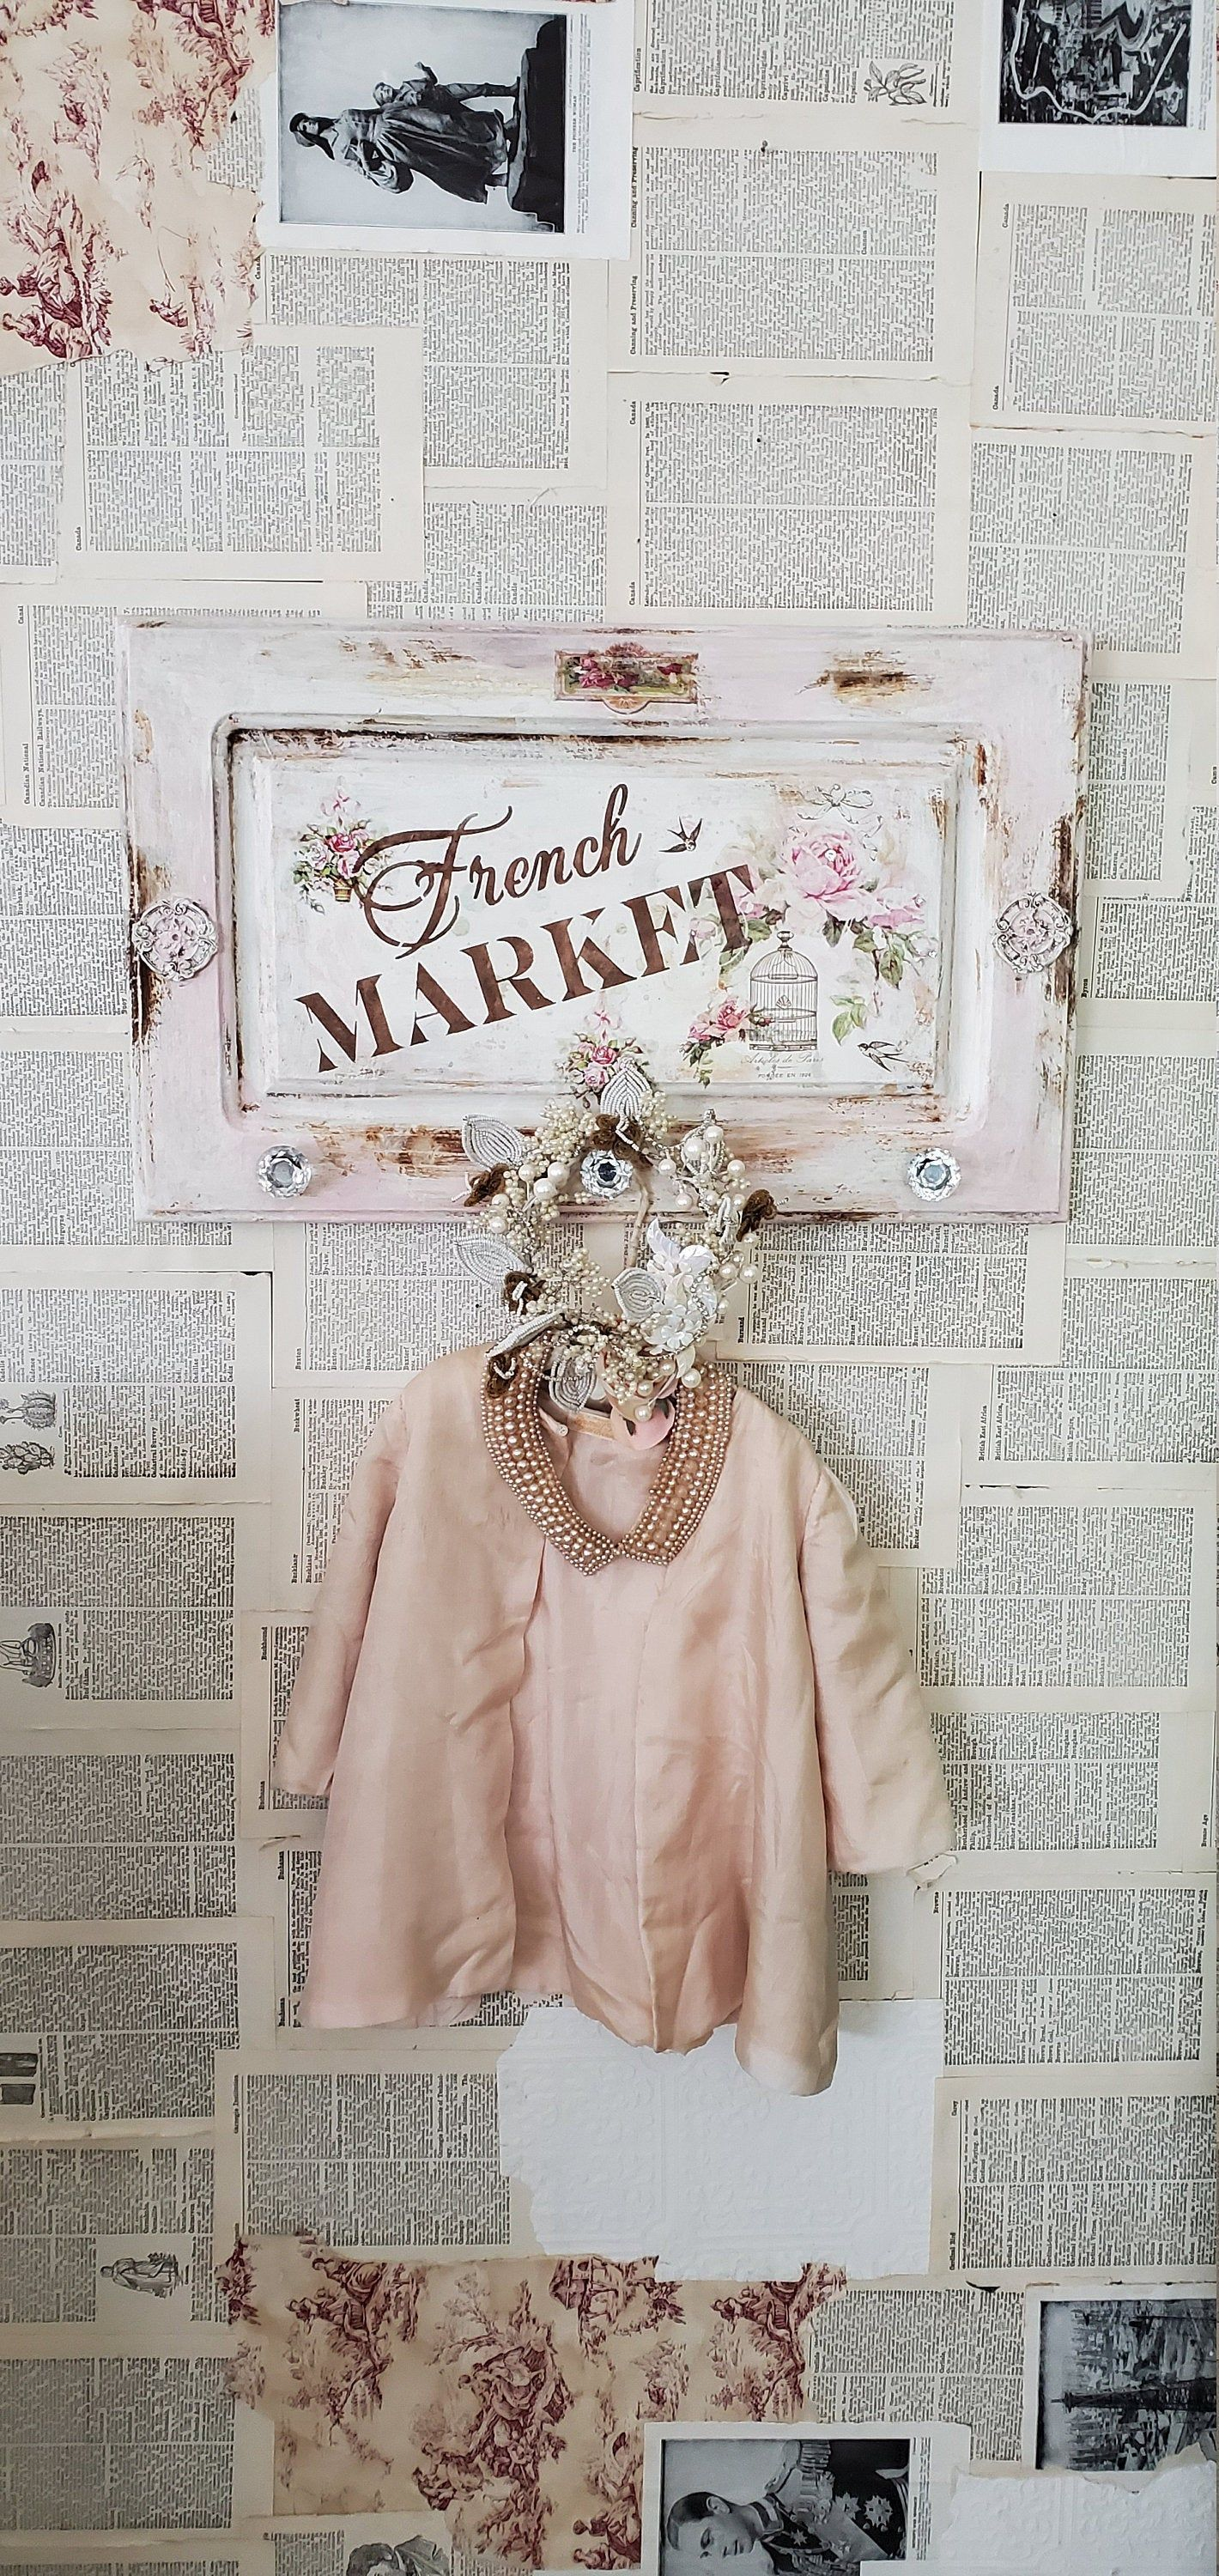 Pin On Shabby Chic Home Decor